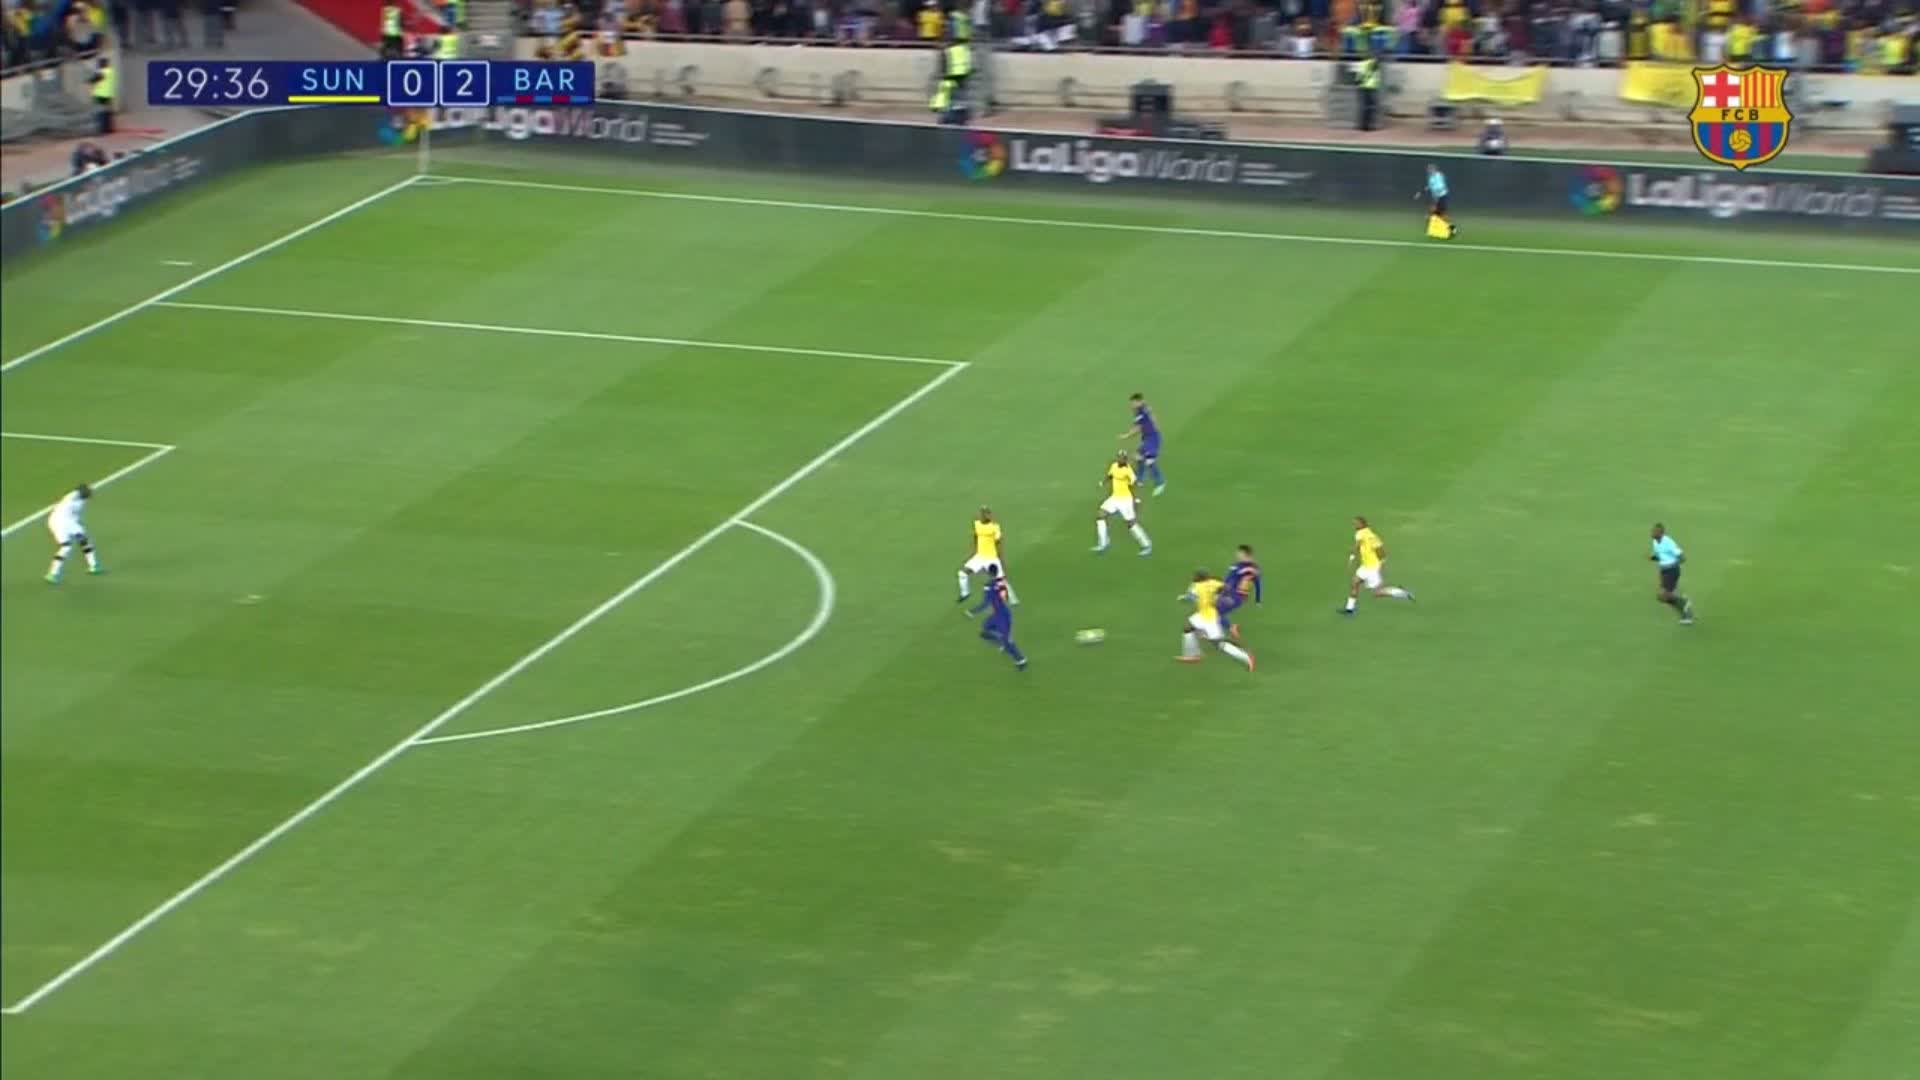 29: Chance for @Dembouz and it's cleared off the line!  #SundownsBarça (0-2) https://t.co/W4P44pVQHe